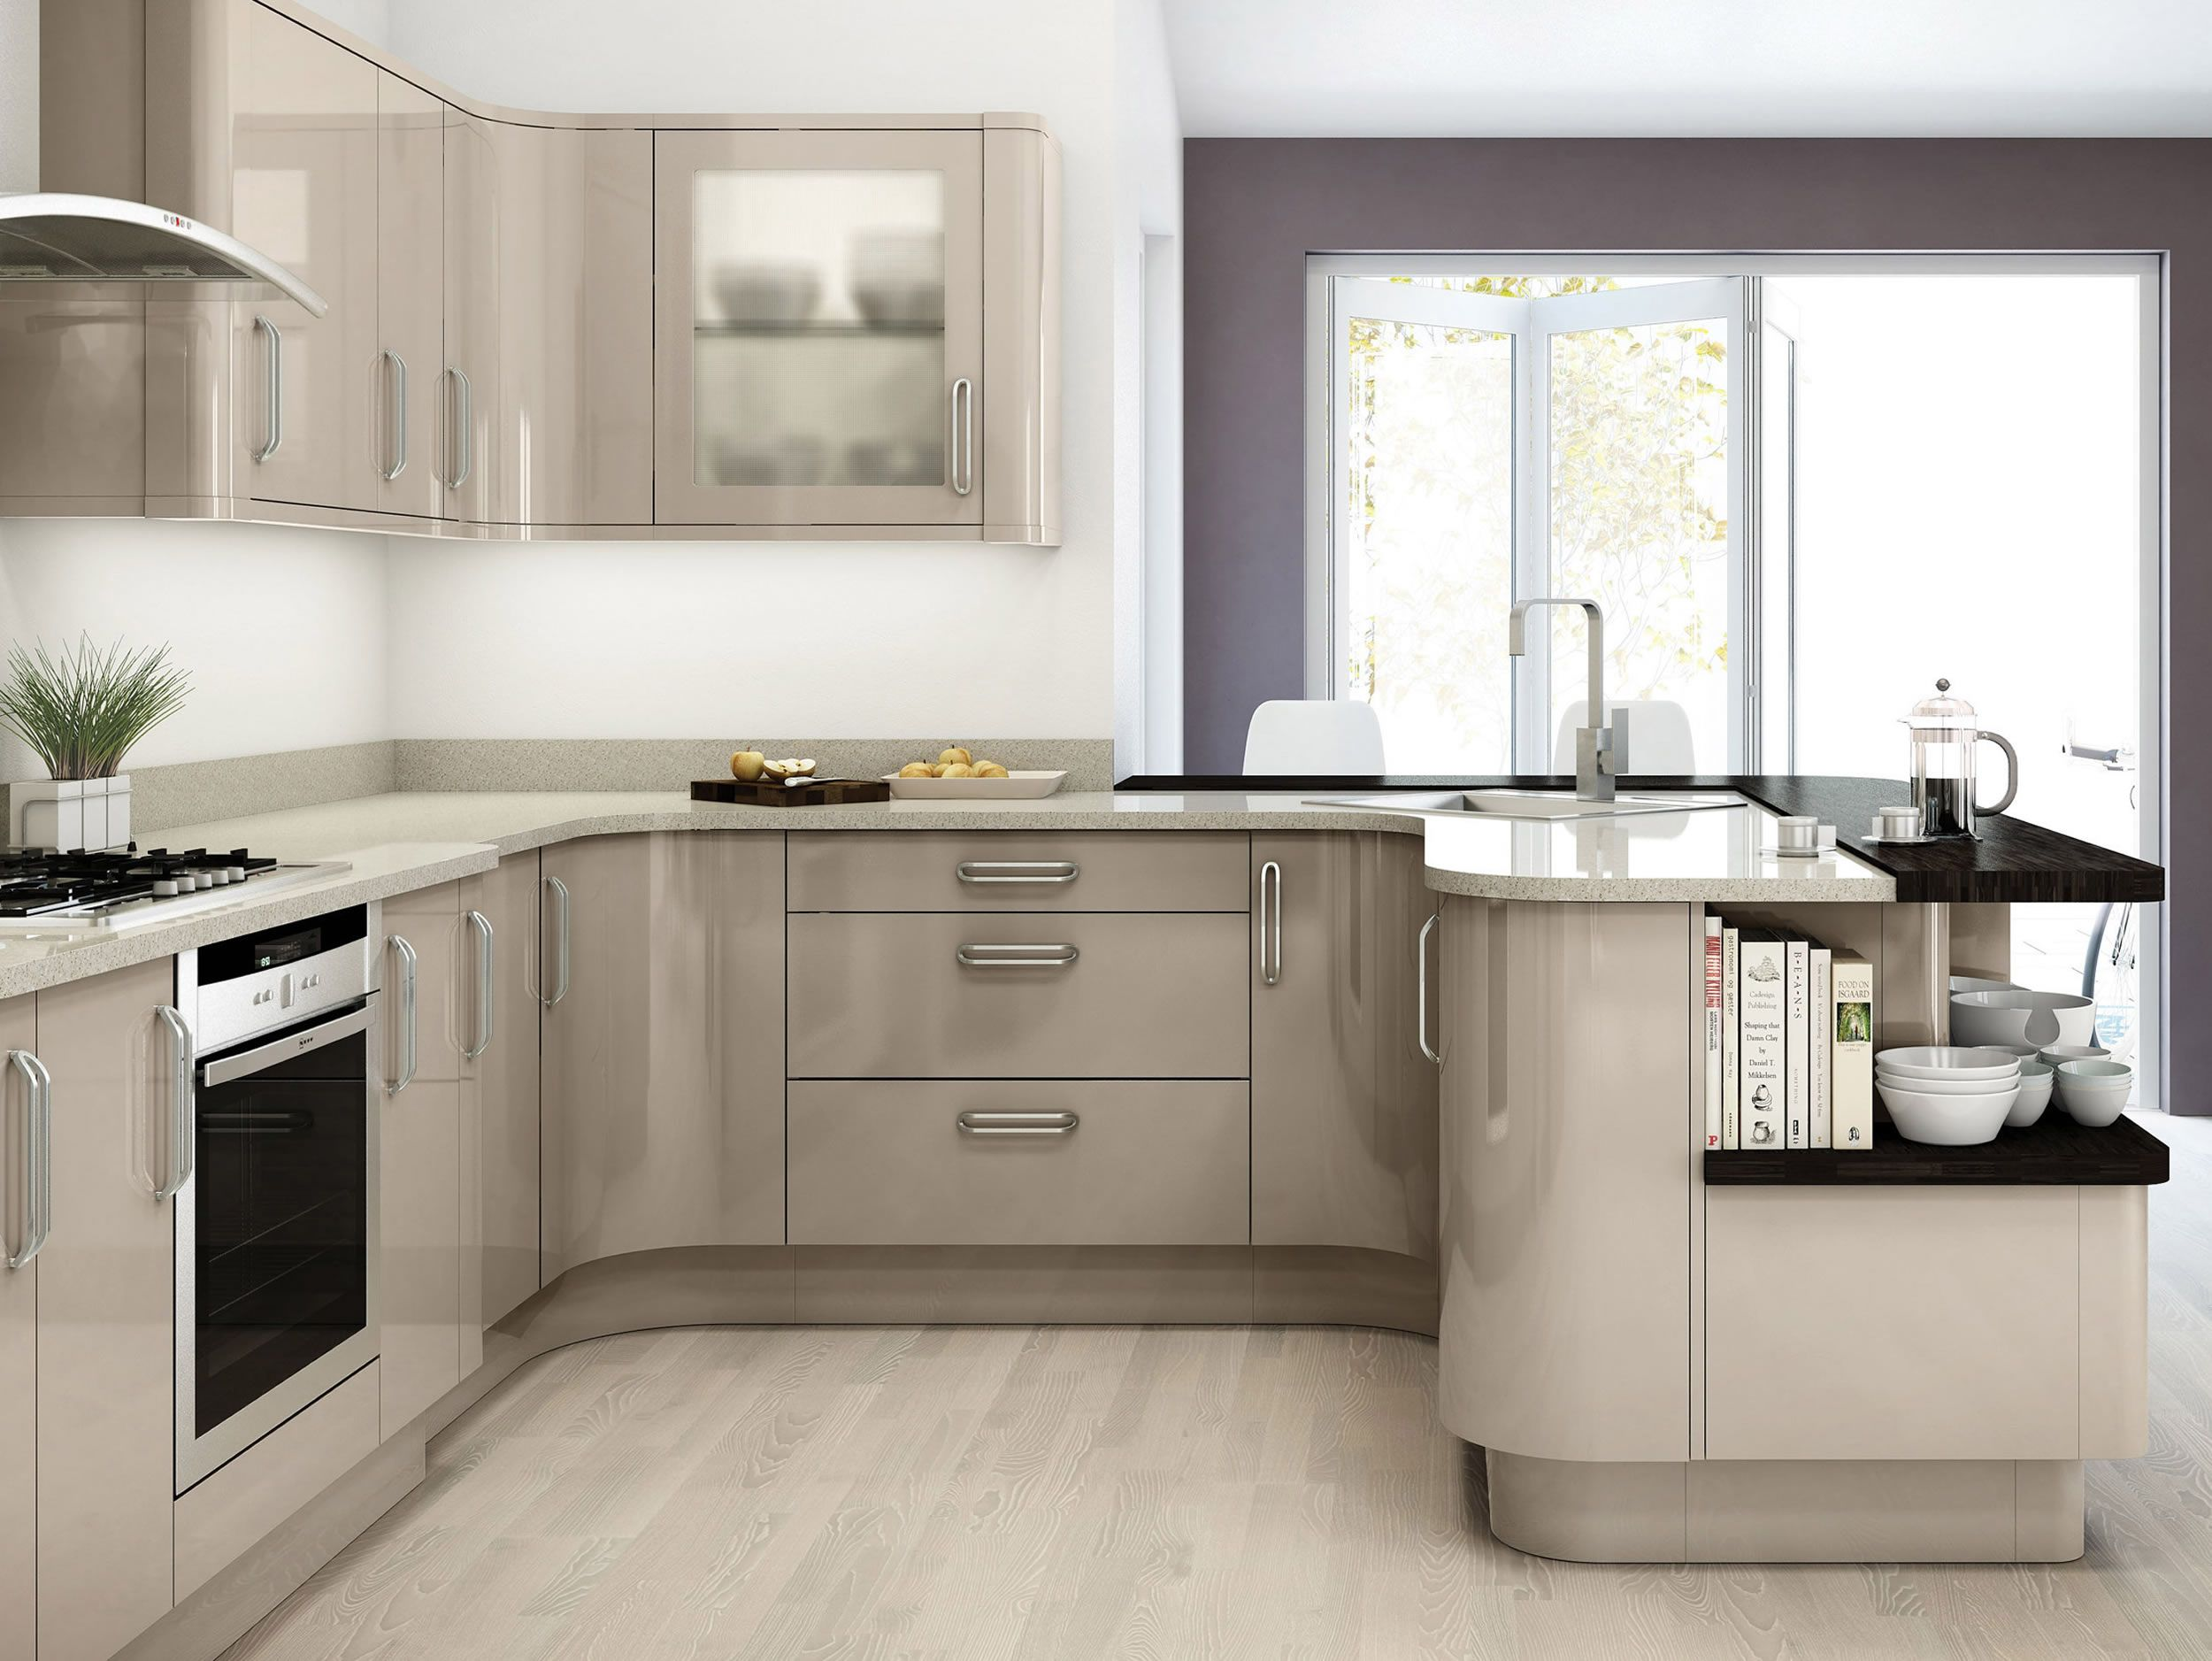 Avant Cappuccino Kitchens Buy Avant Cappuccino Kitchen Units At Trade Prices For My Little Kitchen This Works Out Around Cheaper Than Wickes